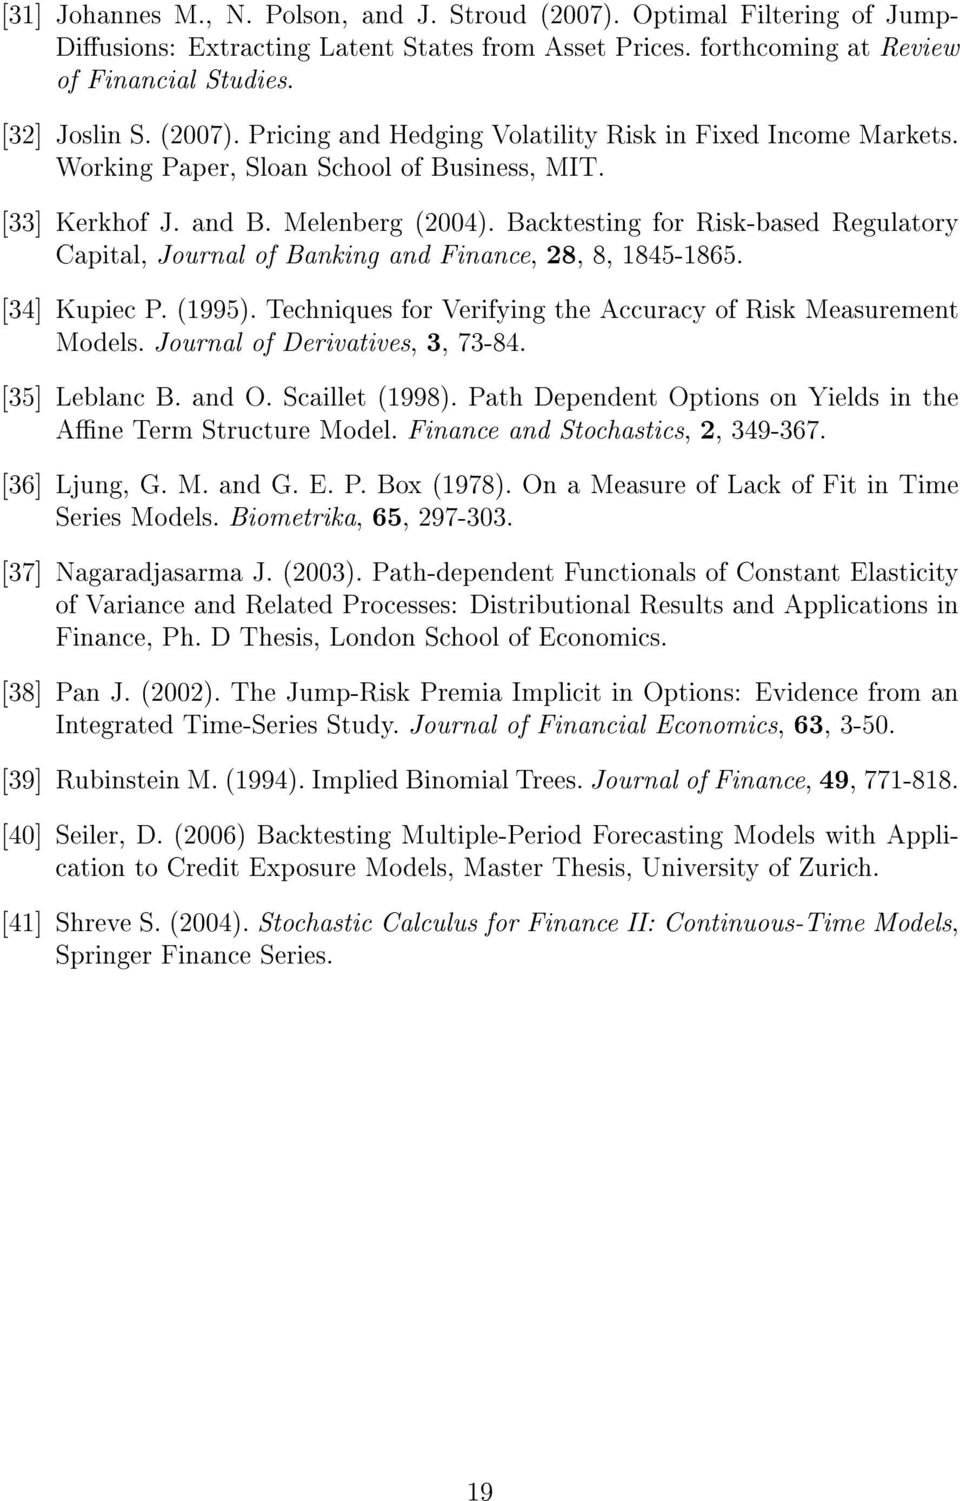 (1995). Techniques for Verifying the Accuracy of Risk Measurement Models. Journal of Derivatives, 3, 73-84. [35] Leblanc B. and O. Scaillet (1998).